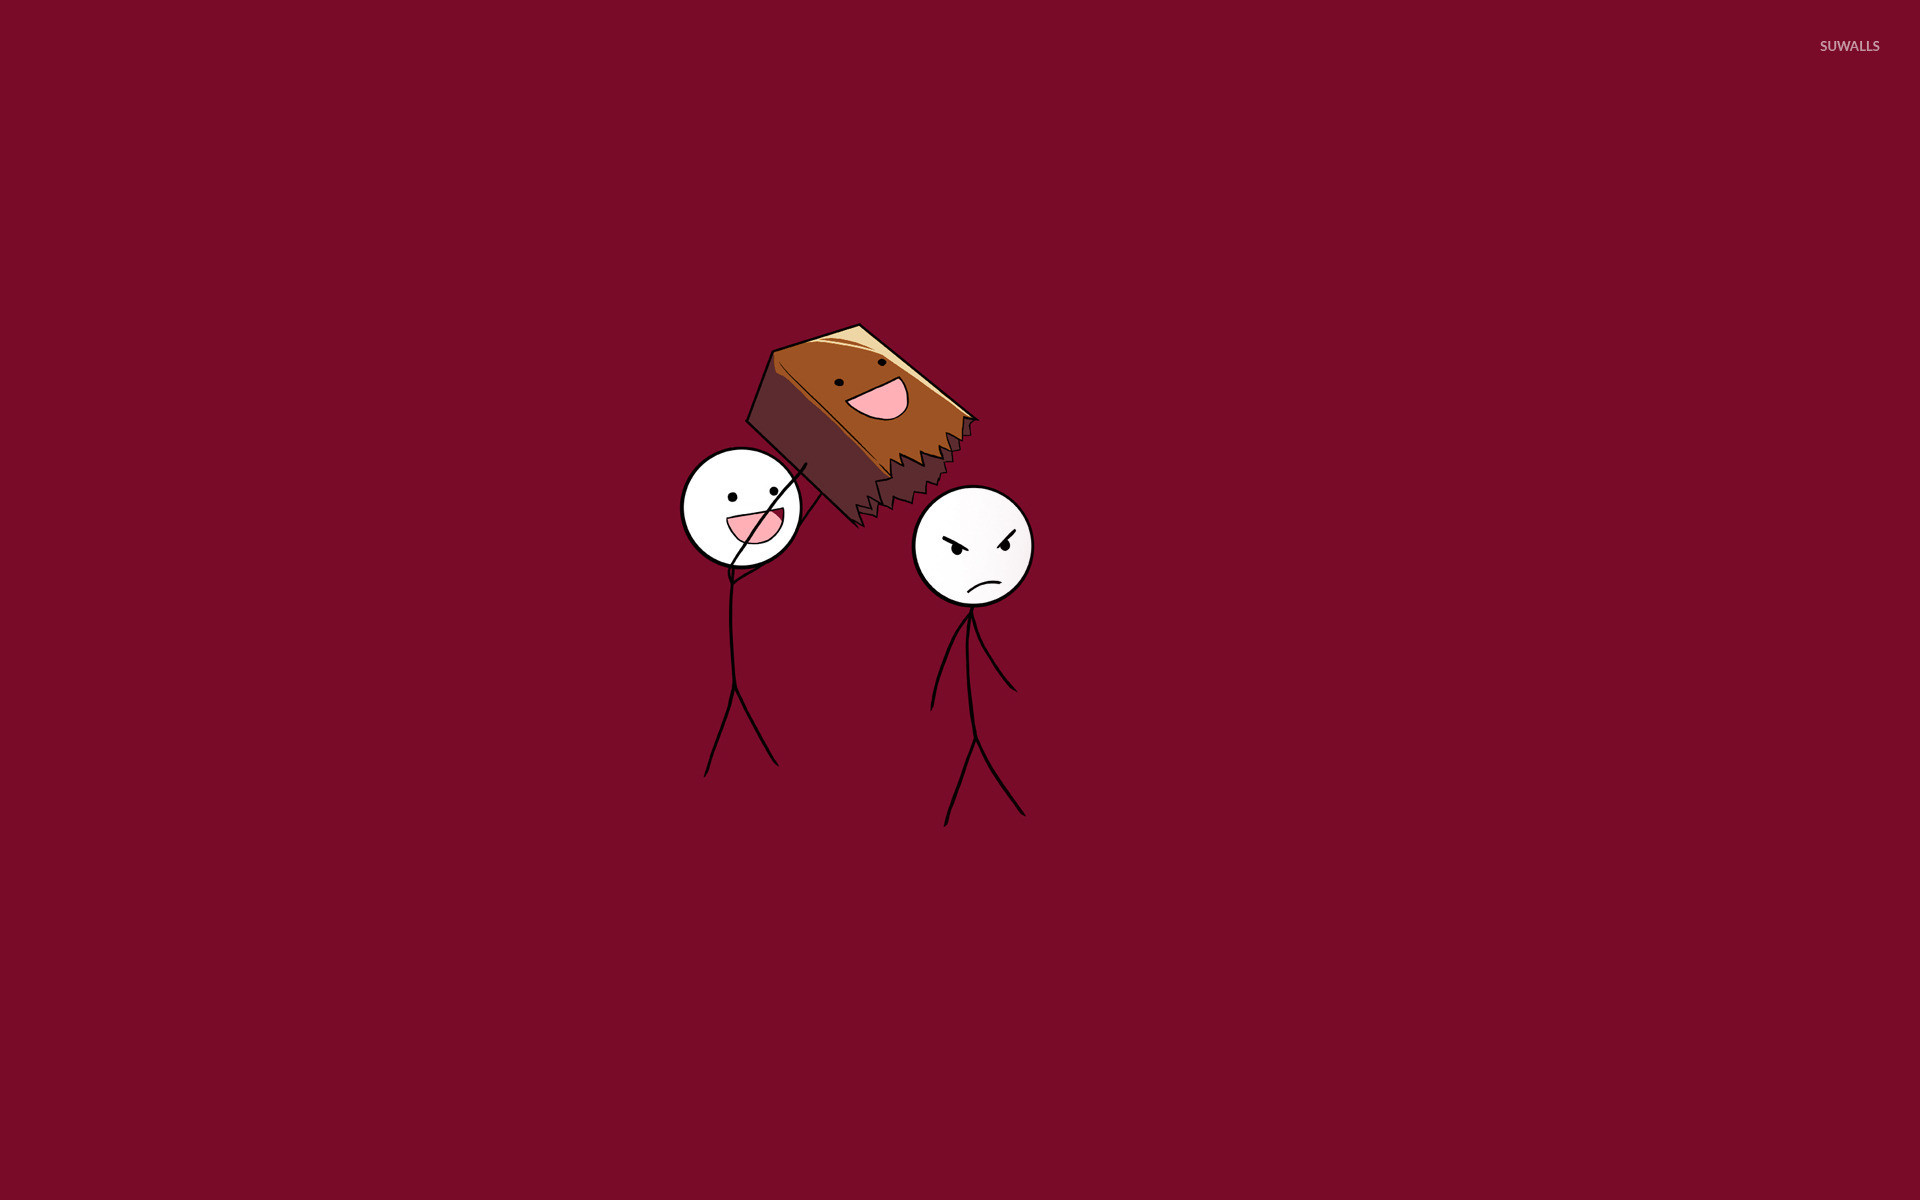 … couch potato wallpaper funny wallpapers 22561 …